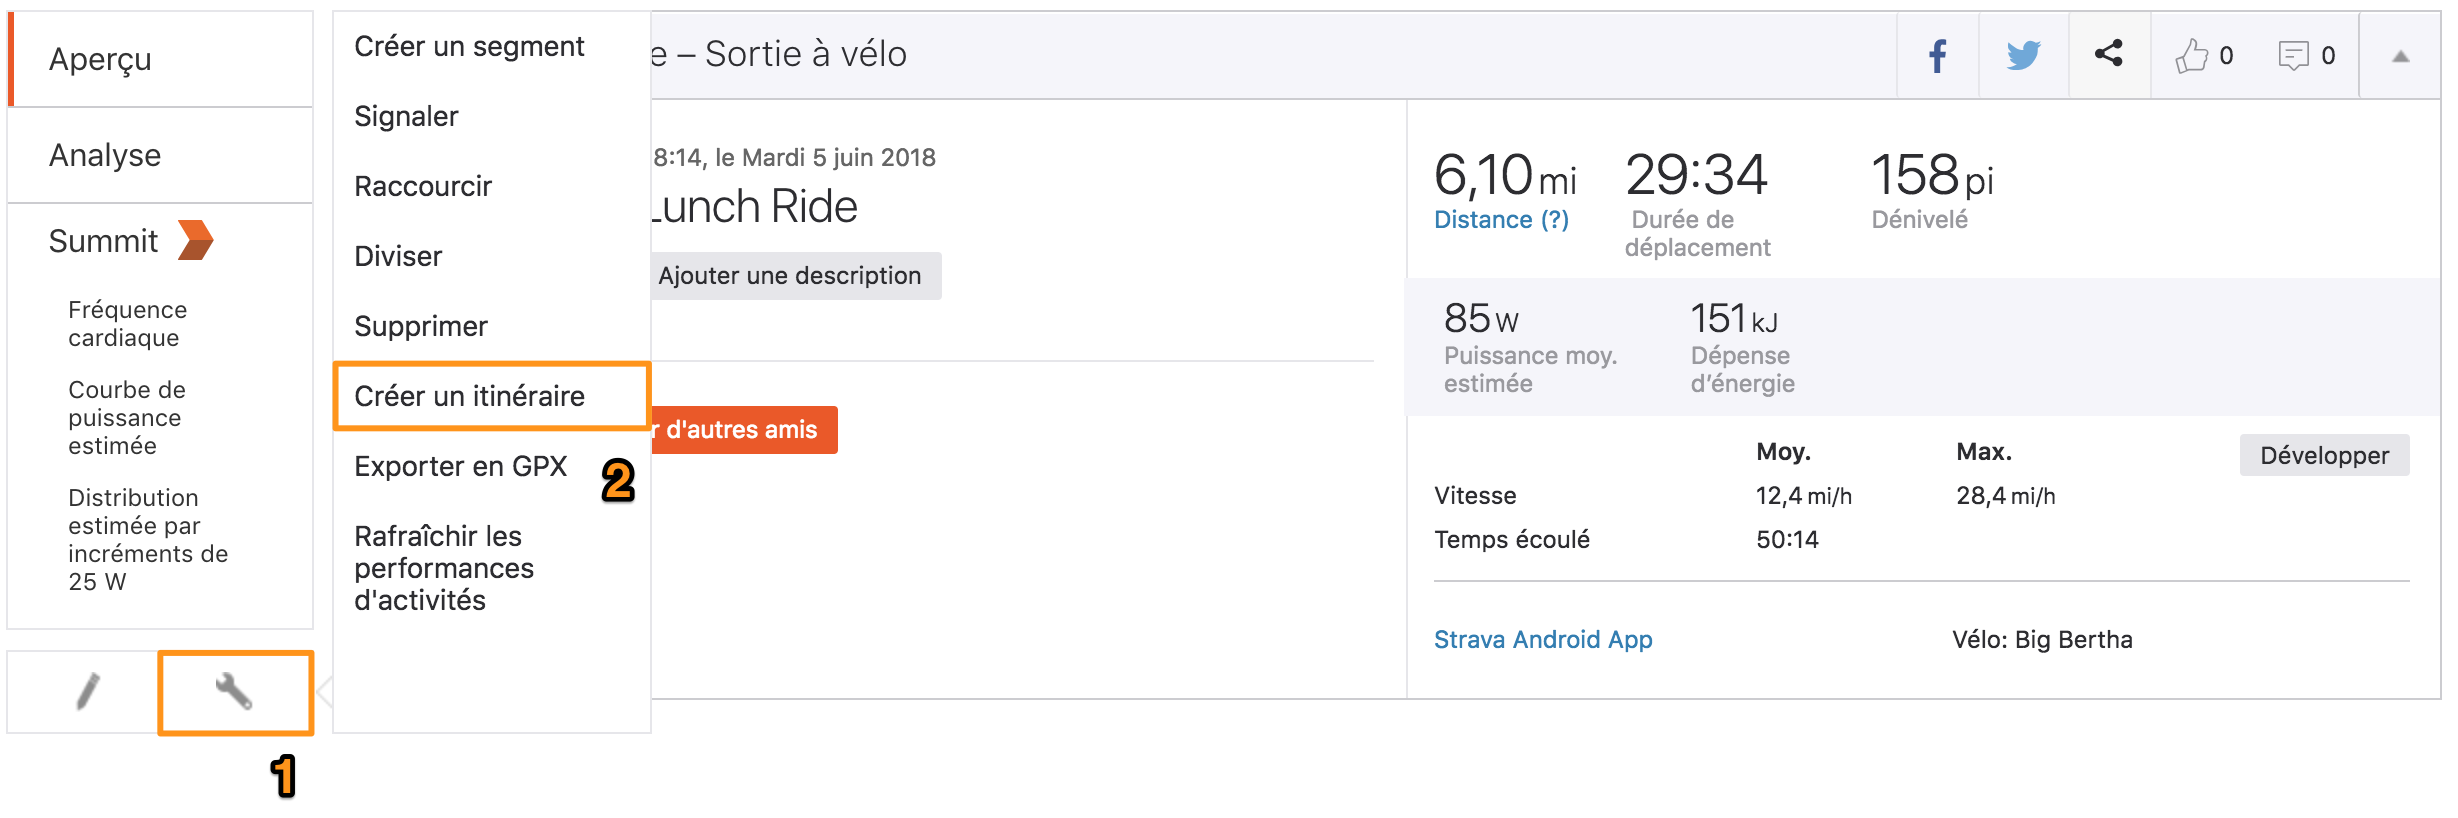 Lunch_Ride___Sortie_a__ve_lo___Strava.png